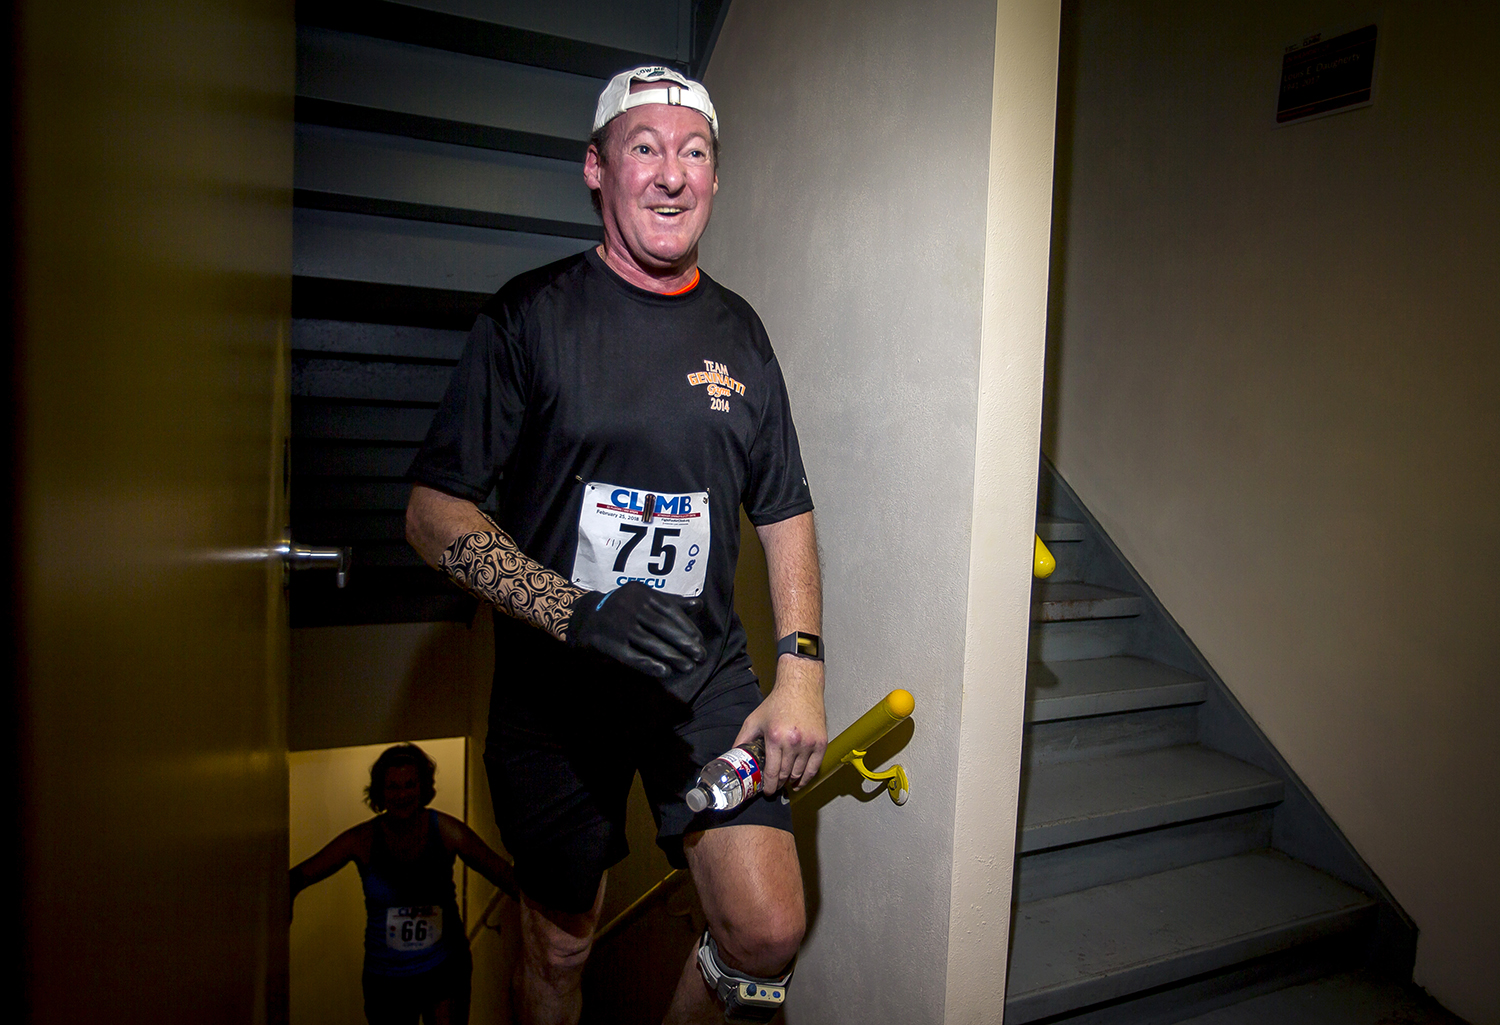 """Mark Block, of Des Moines, Iowa, thanks volunteers and medical staff as they sing """"Lean On Me"""" as he climbs to the 24th floor on his fourth trip as an Ultimate Climber during the American Lung Association Fight For Air Climb at the  Wyndham Springfield City Centre, Sunday, Feb. 25, 2018, in Springfield, Ill. Block is classified as an ambulating quadriplegic after suffering two different accidents in his life that left him paralyzed and after completing the climb for the fourth time was returning to climb again for his team. """"You have so many people on any given day that tell you what you can't do and what you shouldn't do or you might get hurt,"""" said Block. """"Just to come here among like minded people and it's all about what you can do, we all help each other to the top."""" [Justin L. Fowler/The State Journal-Register]"""